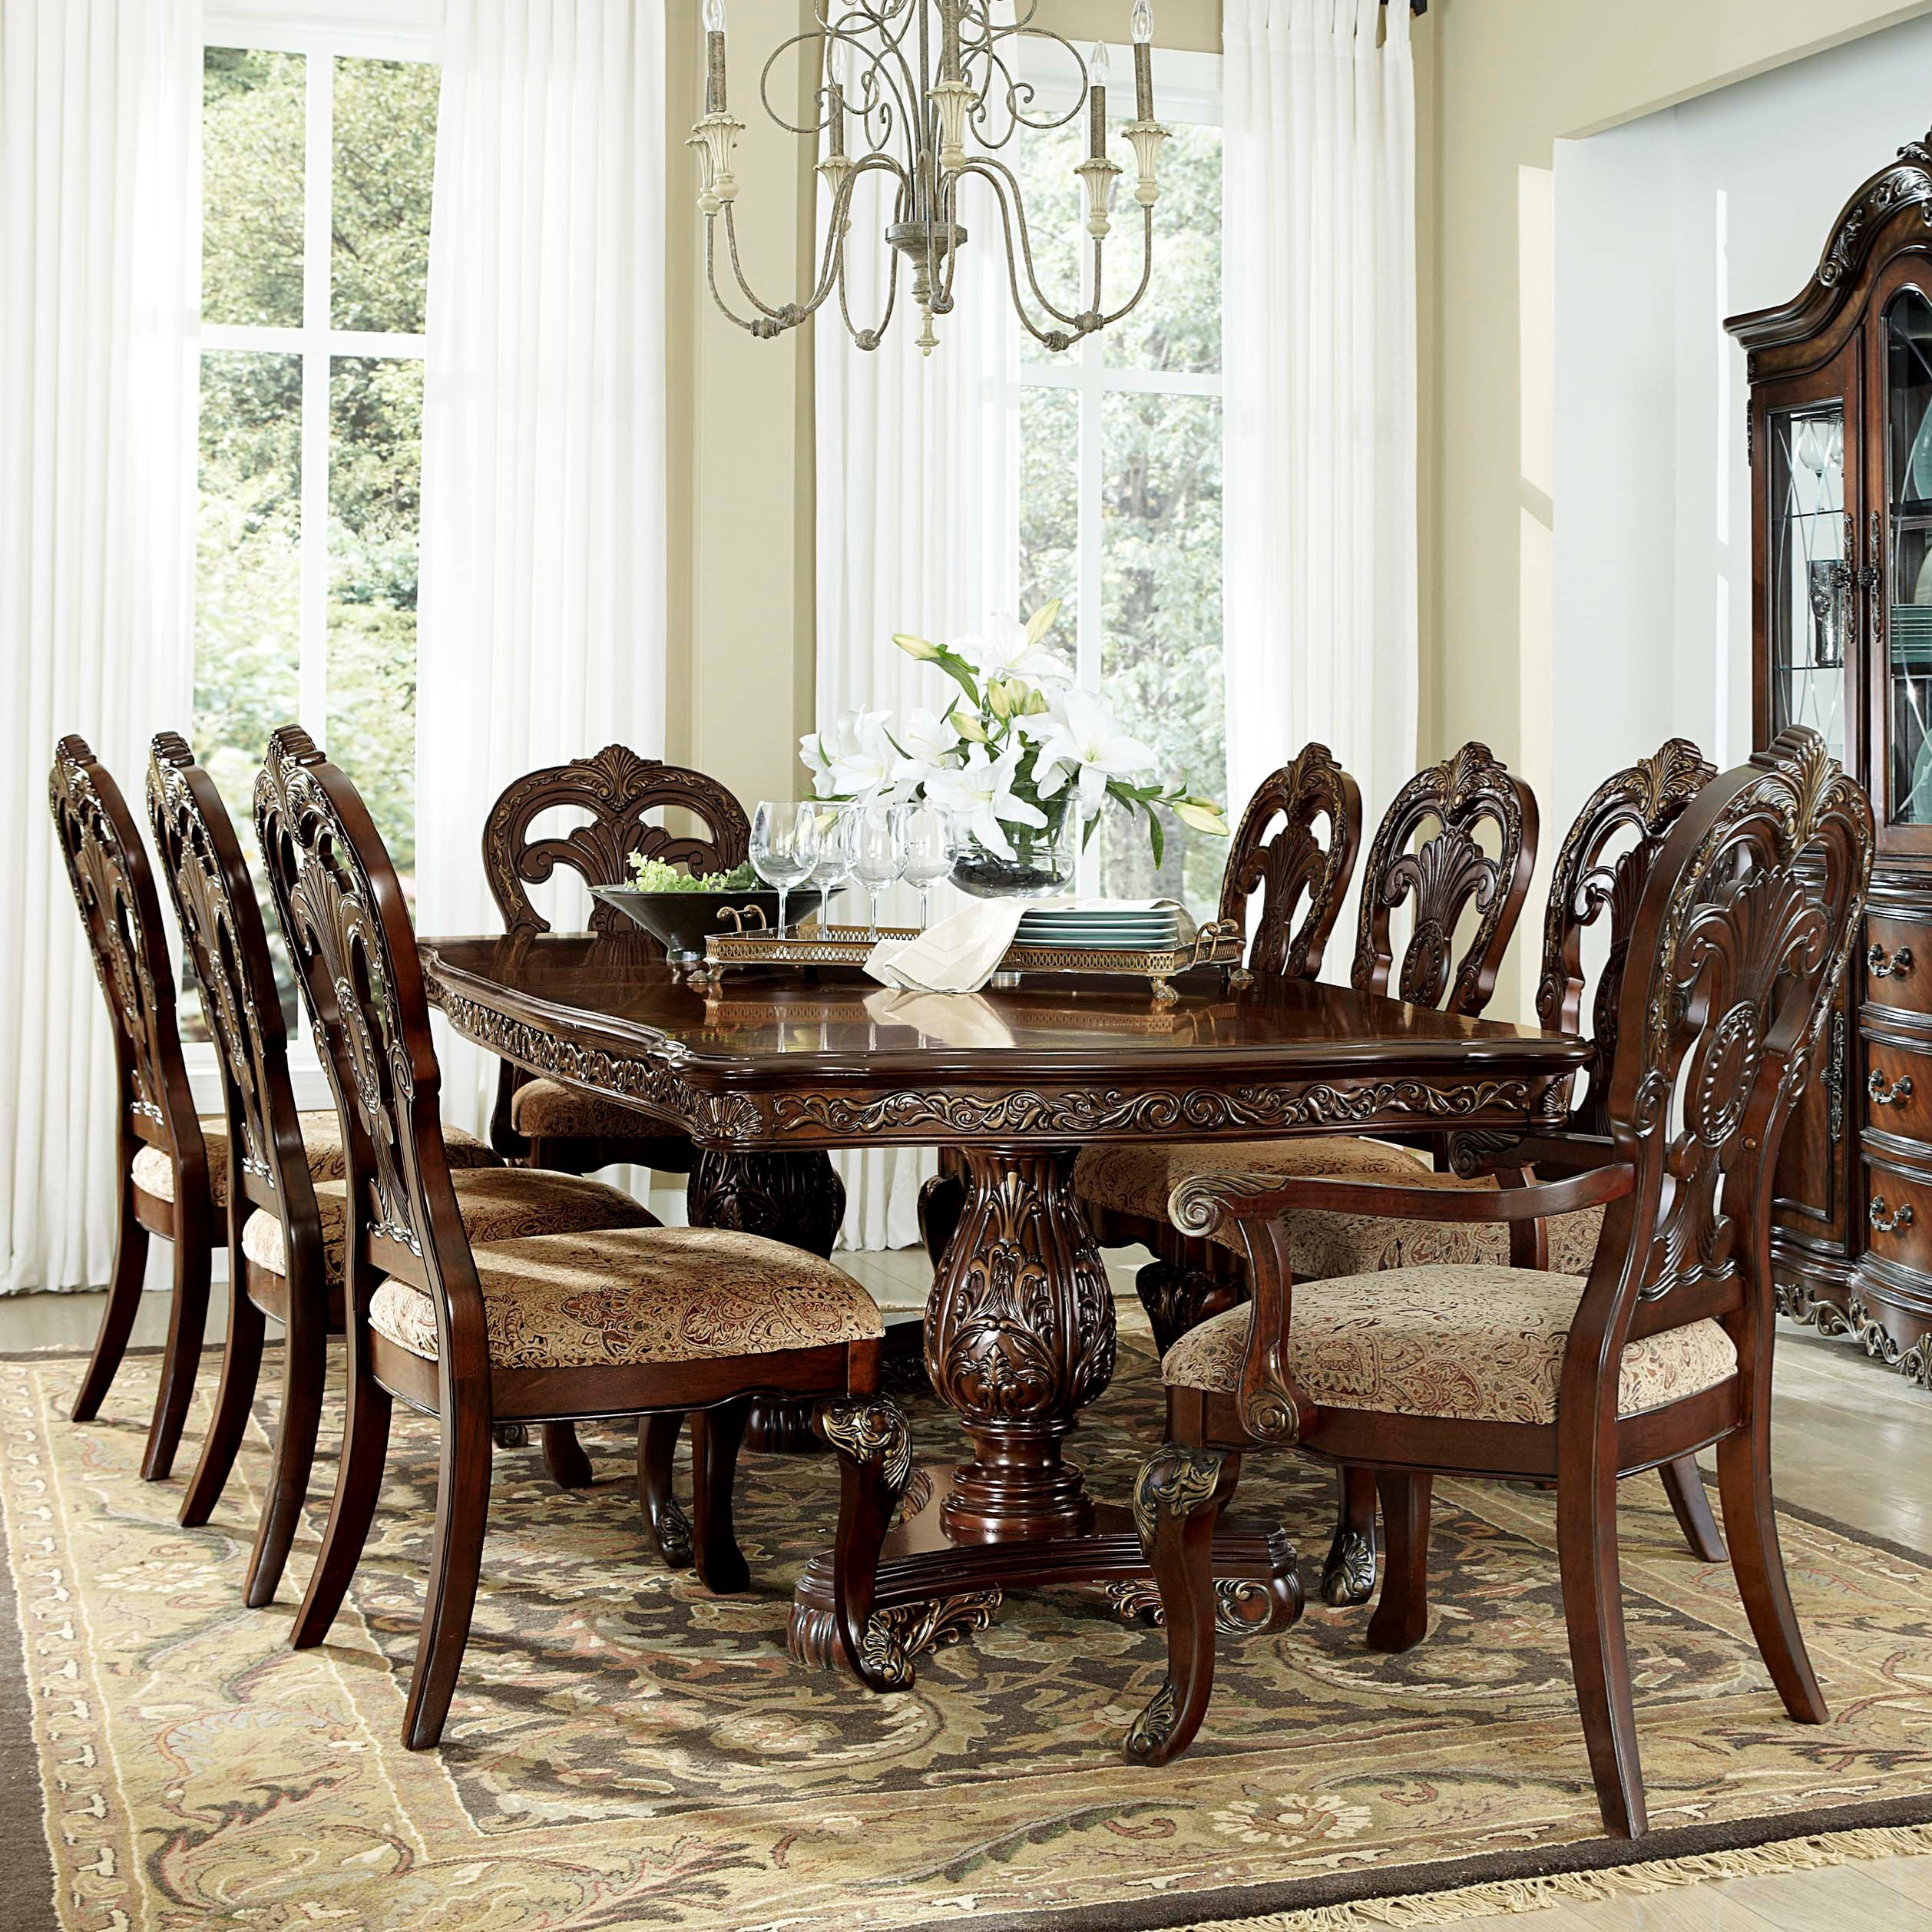 Homelegance Deryn Park Traditional Dining Table And Chair